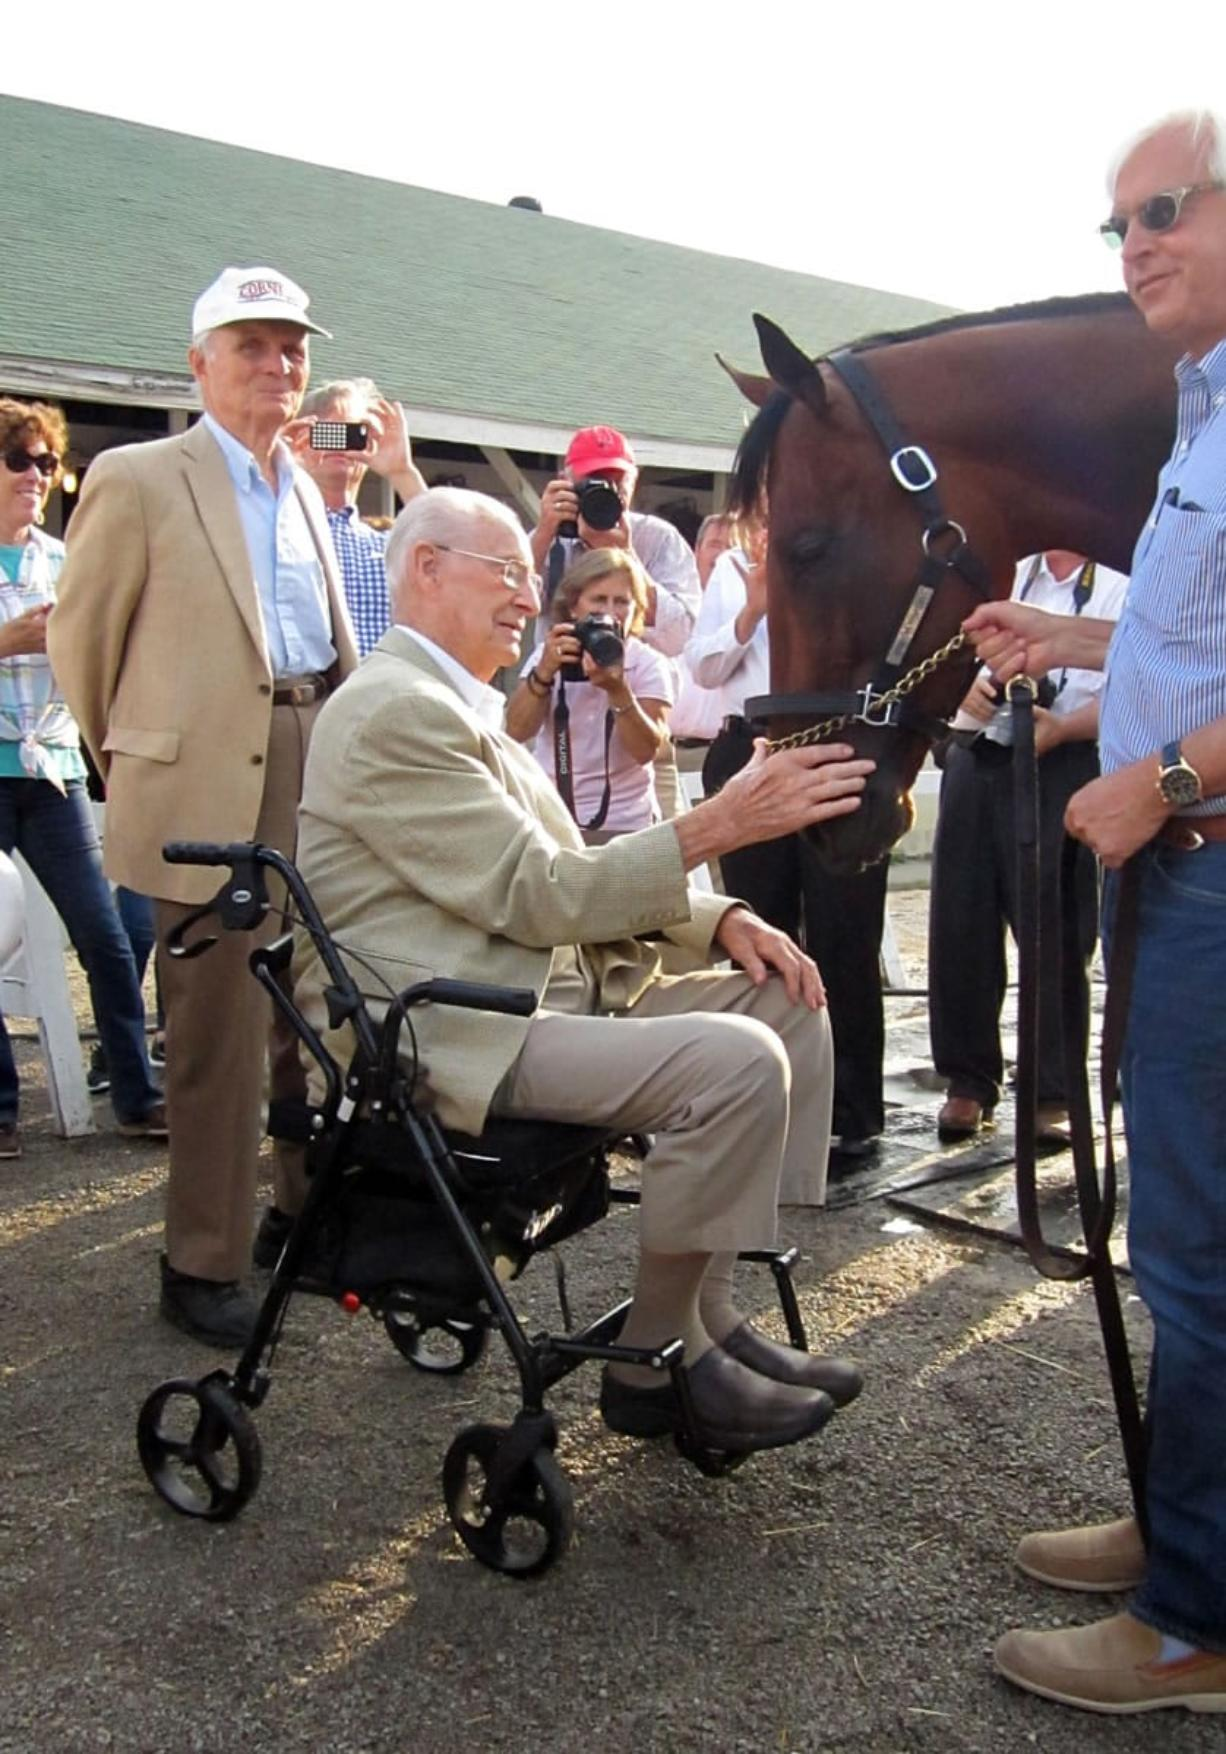 William McGee, 98, who has seen six Triple Crown winners, pats American Pharoah in June. The 2015 Triple Crown winner is scheduled to make the last start of his racing career on Saturday. As a boy, McGee attended what then was Shumway Junior High in Vancouver. (Gary B.